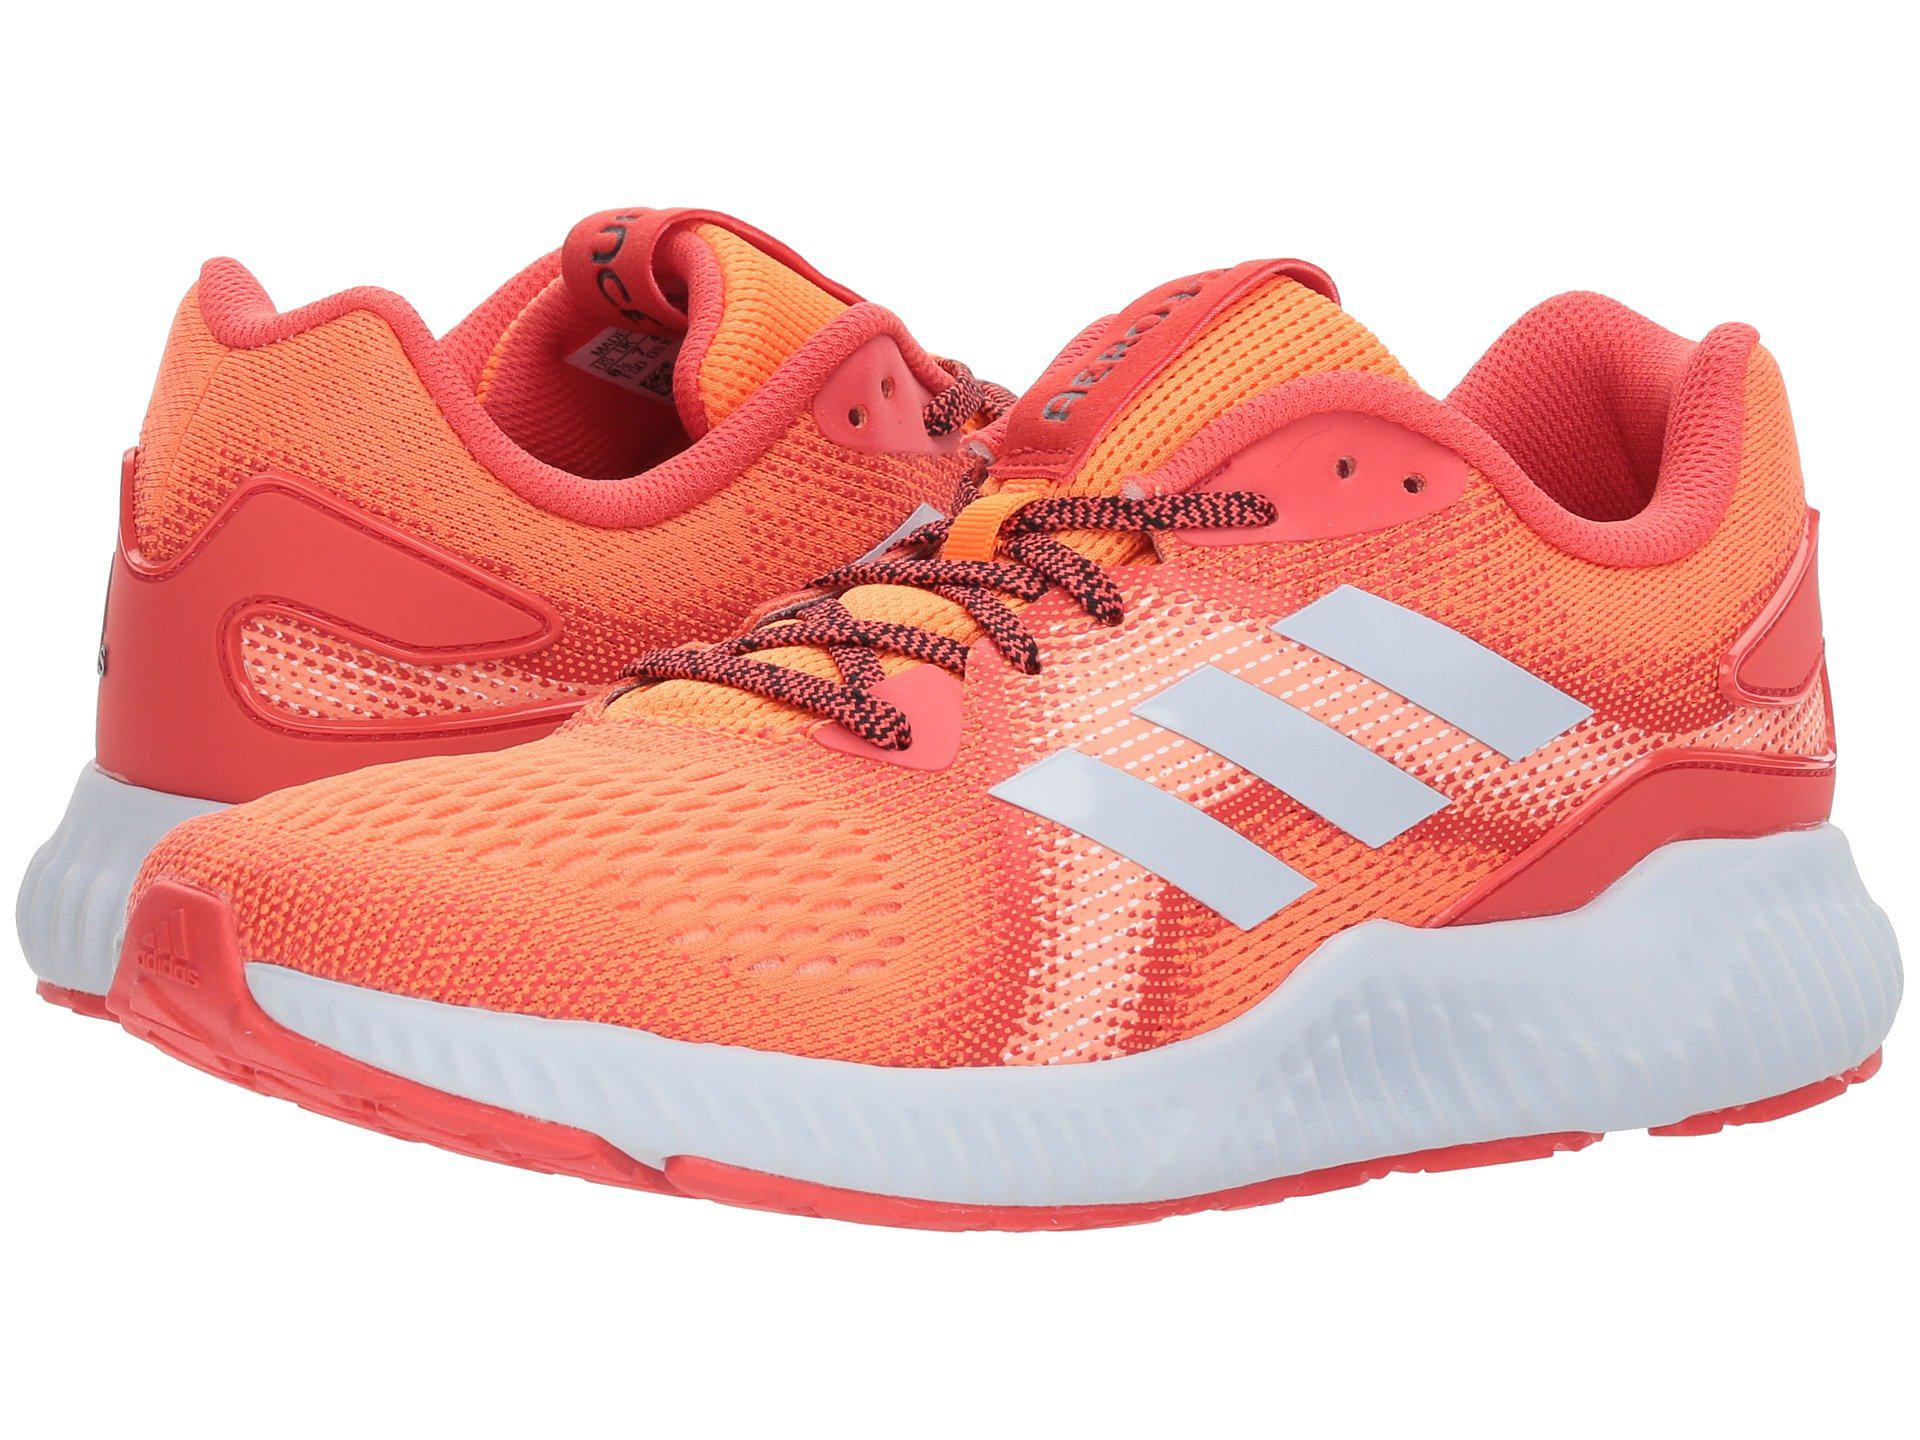 Lyst - Adidas Originals Aerobounce in Orange abf397355